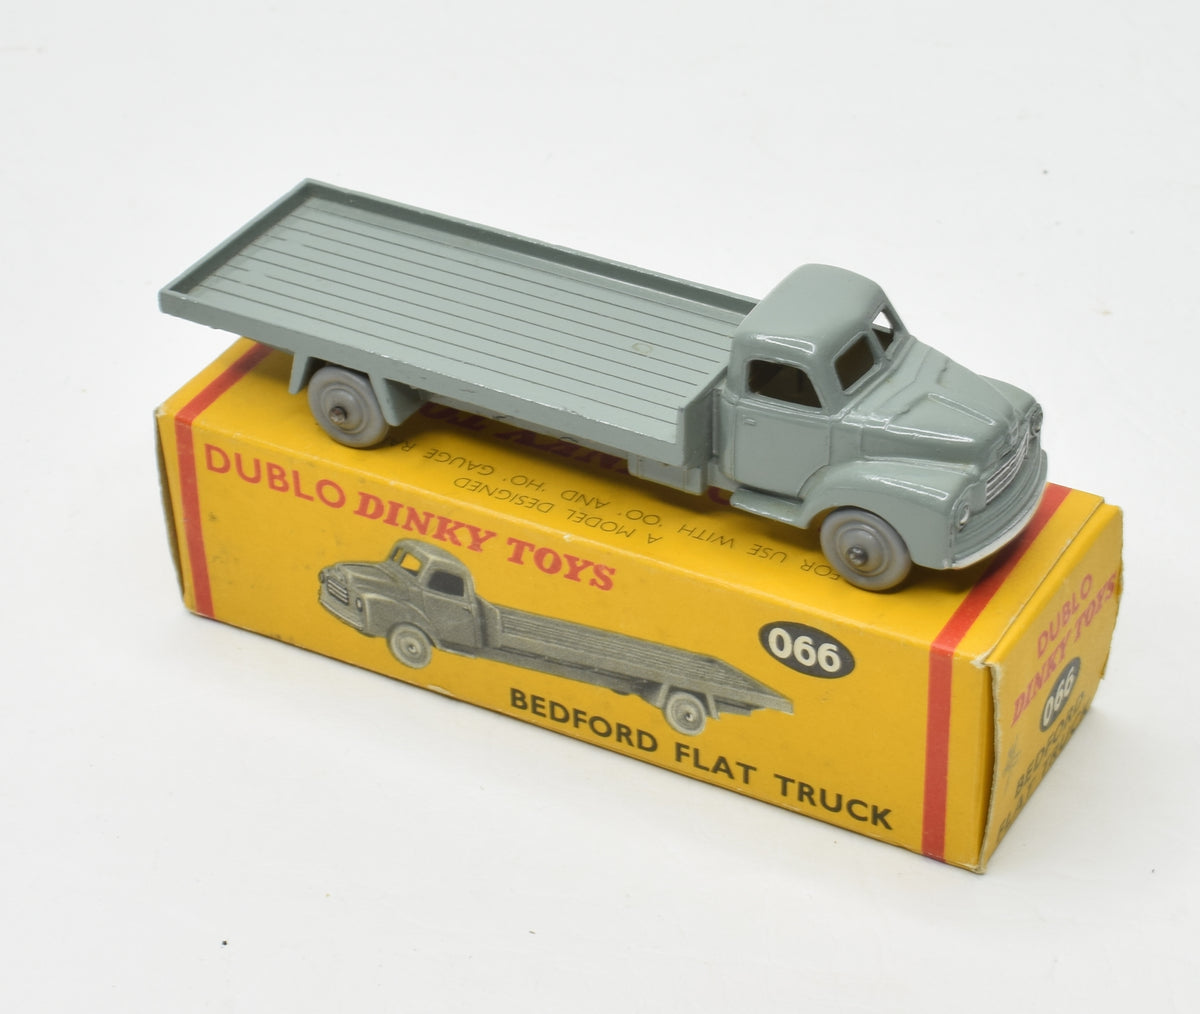 Dublo Dinky toy 066 Bedford Flat truck Very Near Mint/Boxed